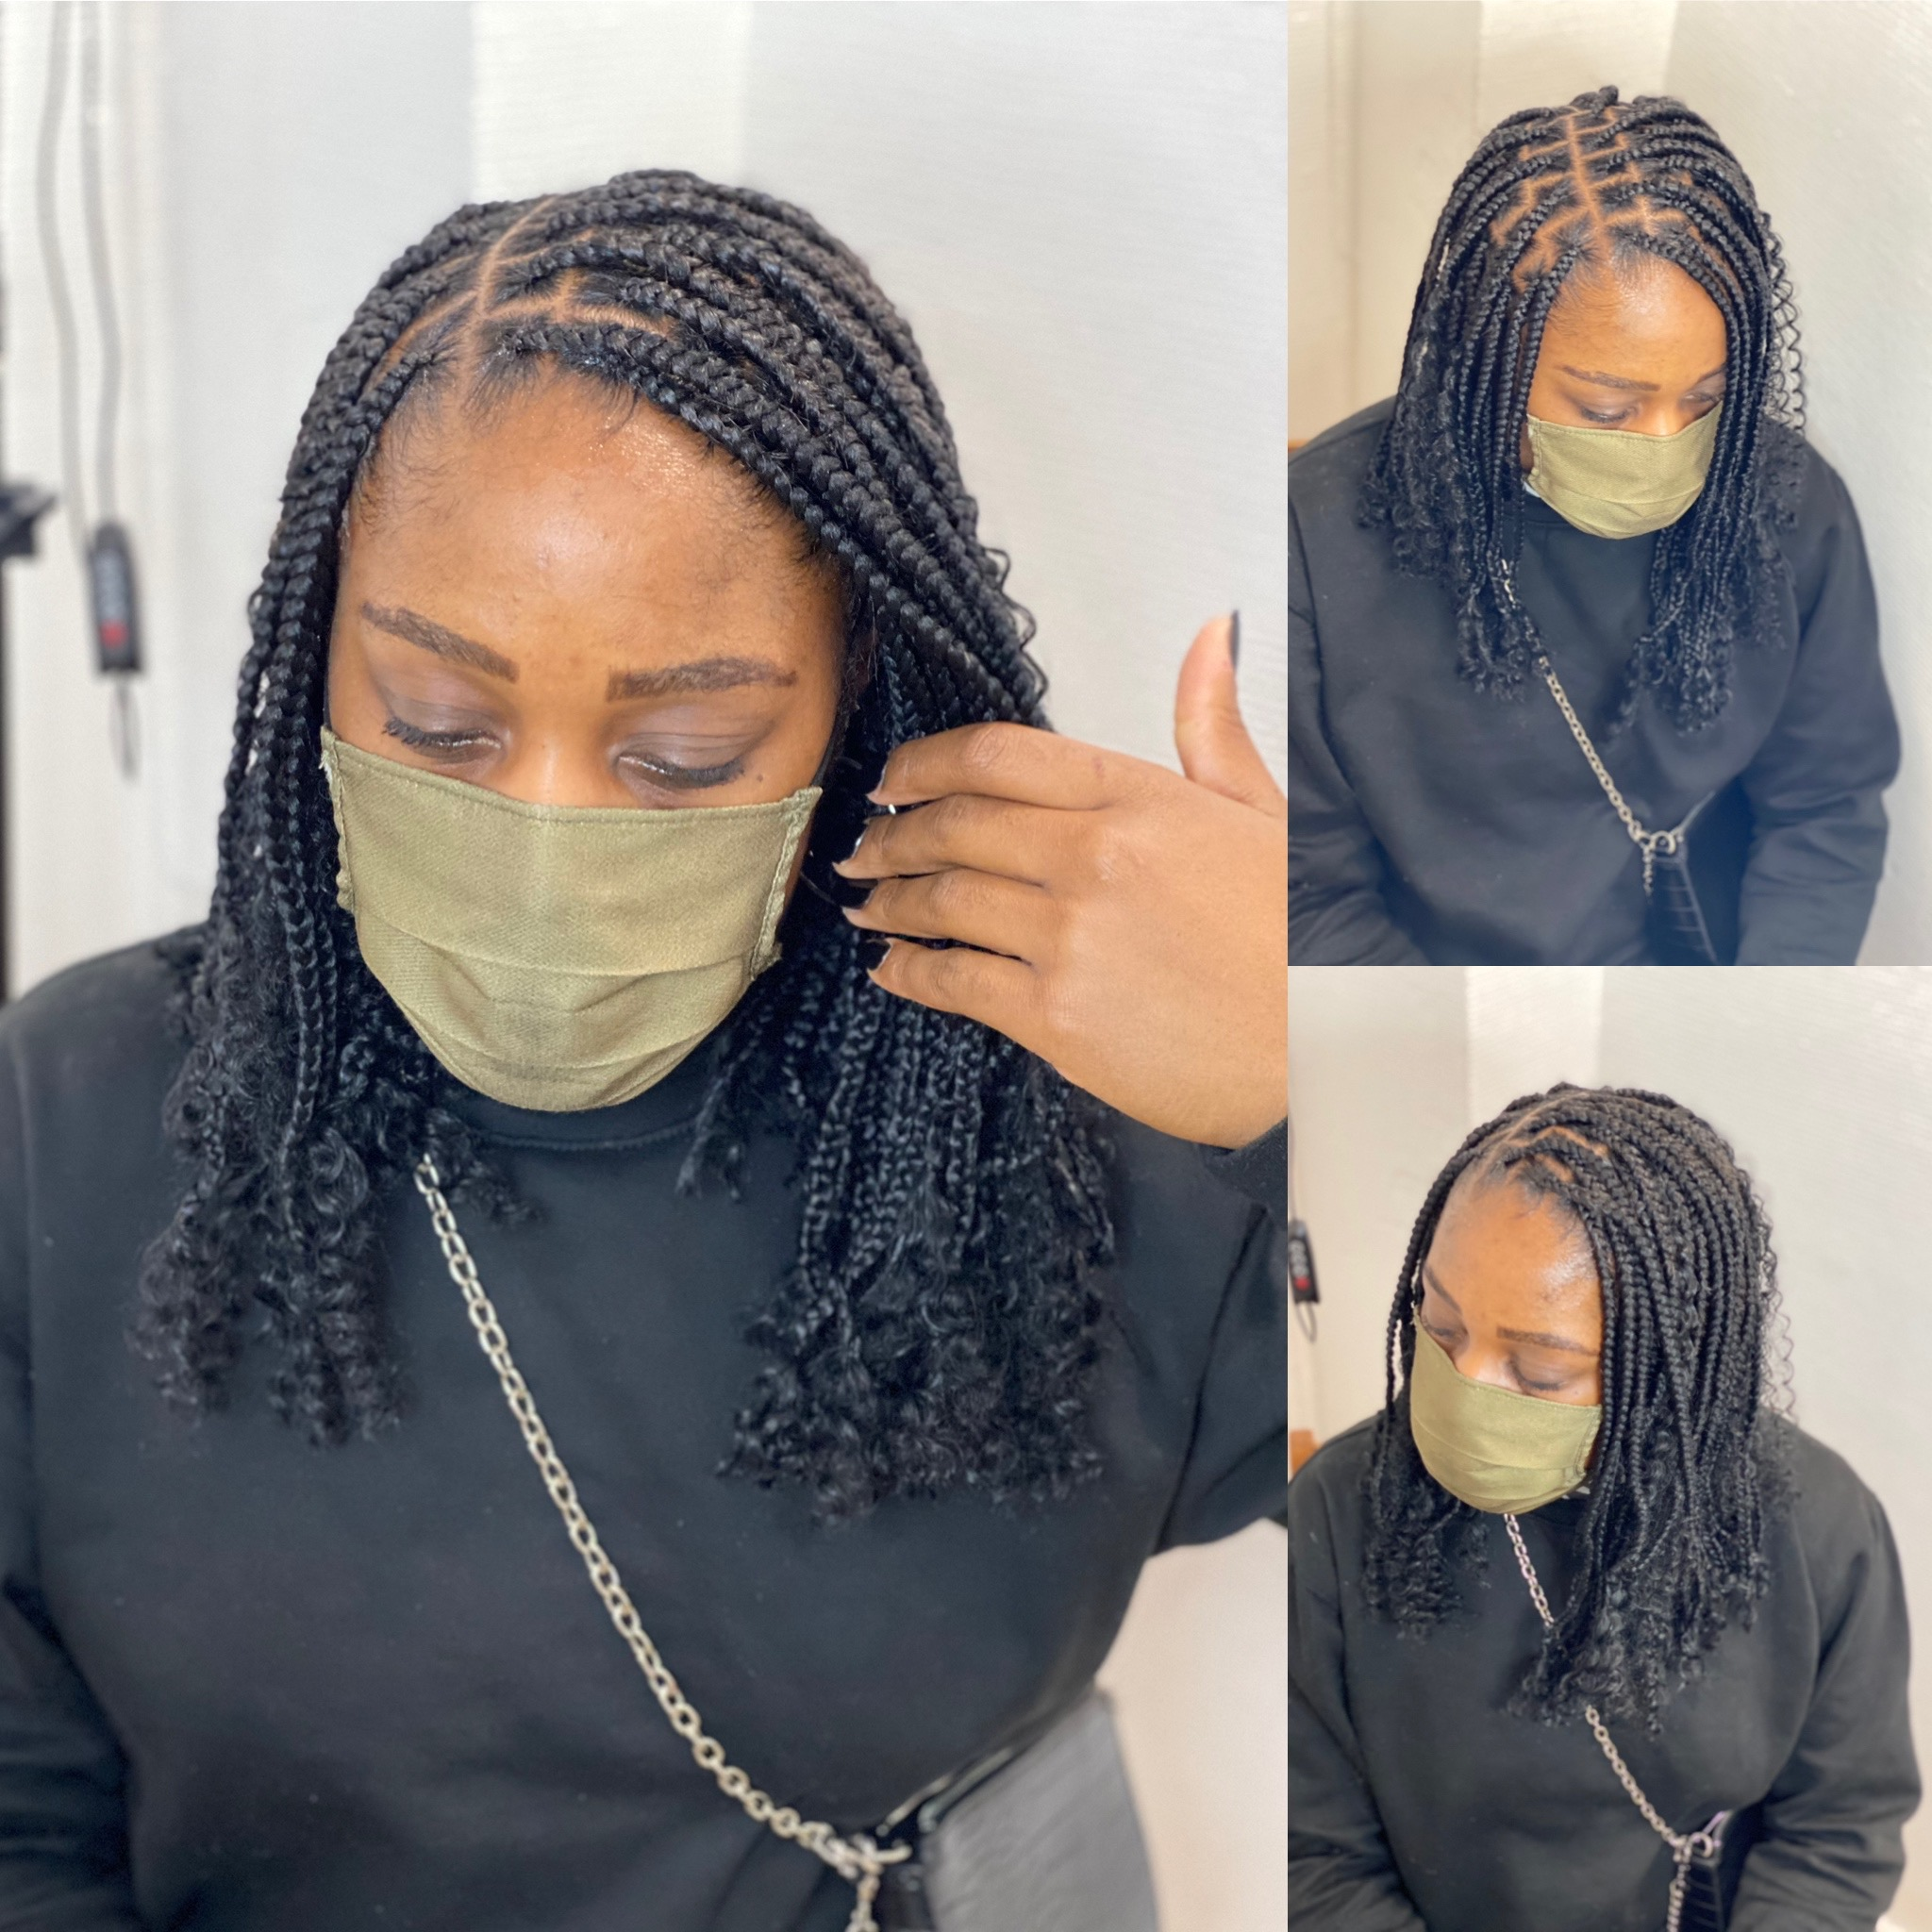 salon de coiffure afro tresse tresses box braids crochet braids vanilles tissages paris 75 77 78 91 92 93 94 95 LNHDSXVB